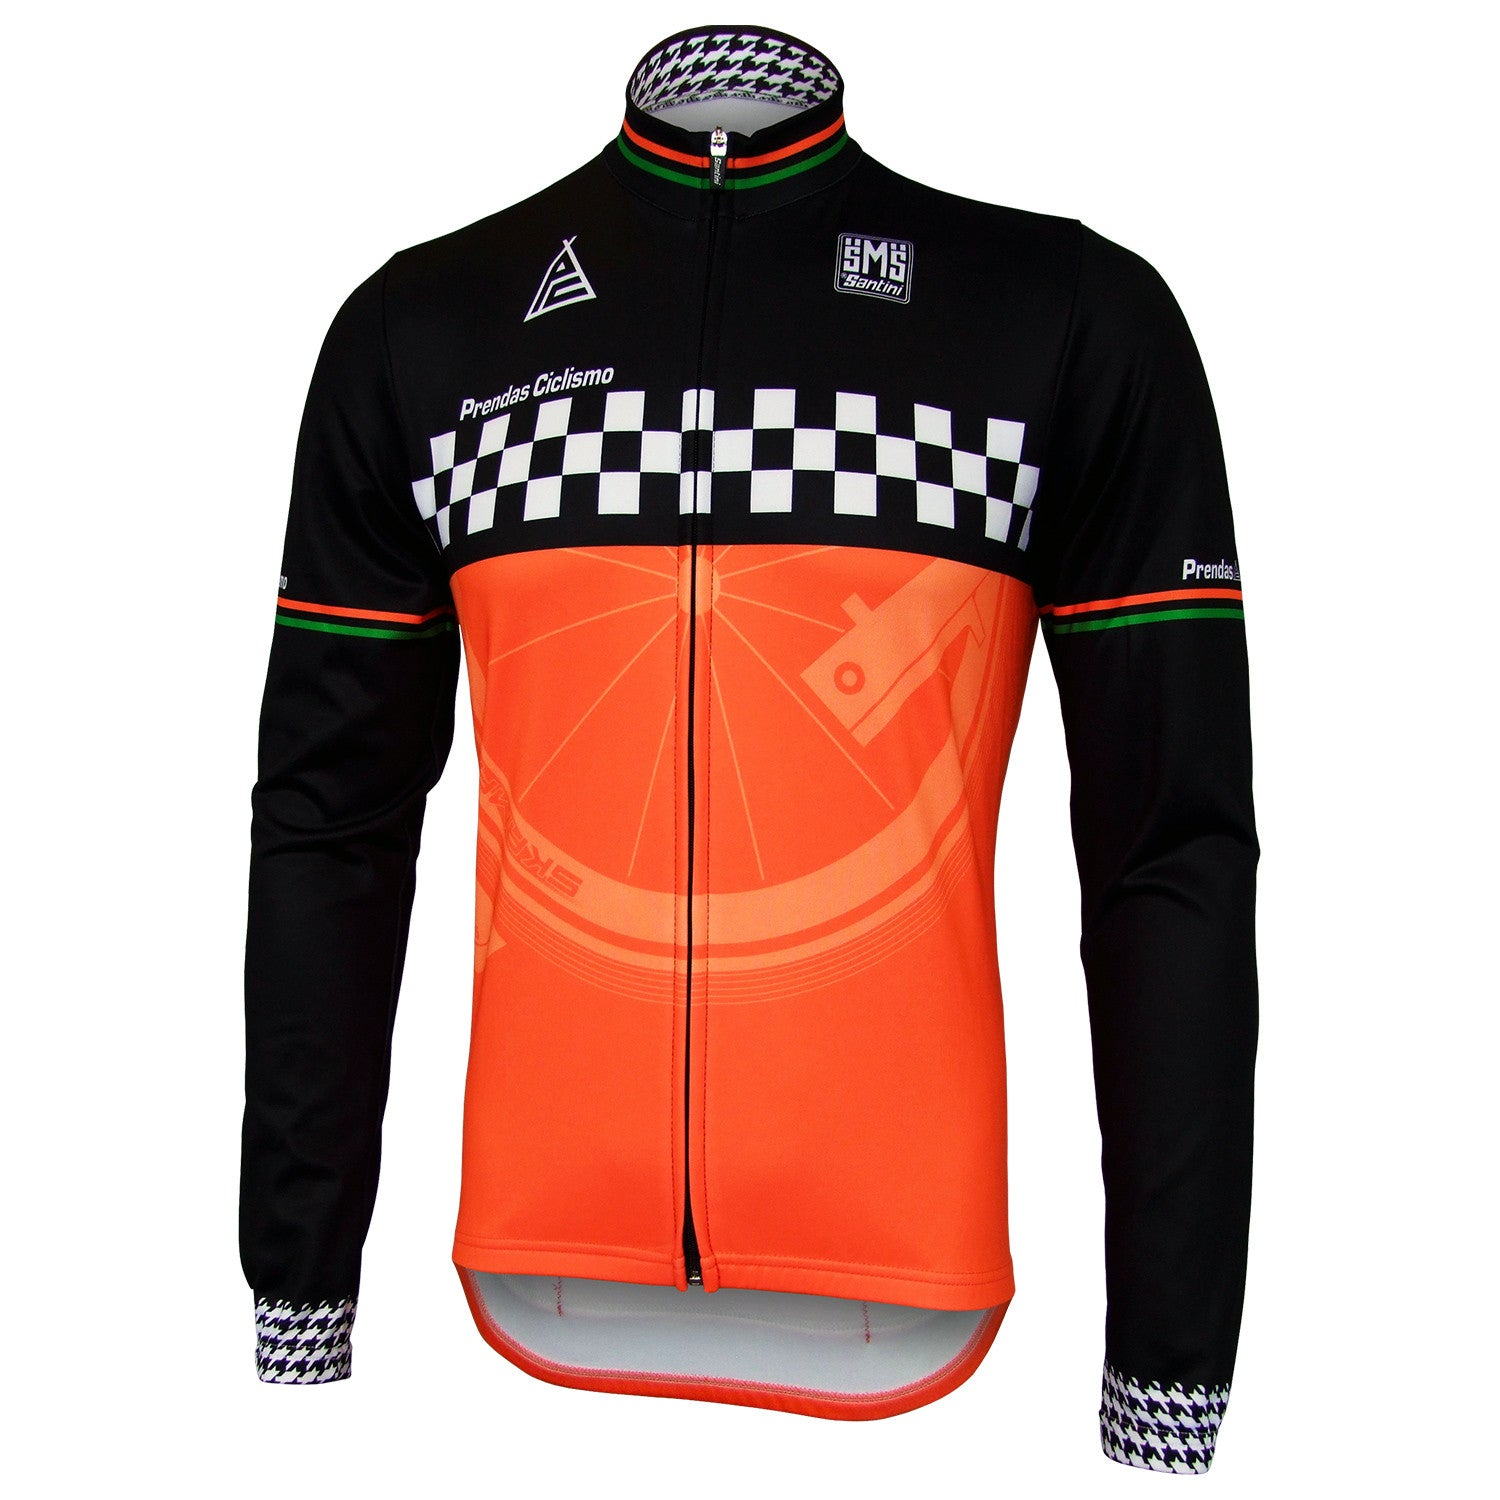 Cycling jerseys available to buy with short sleeves or long sleeves ... 538356a67